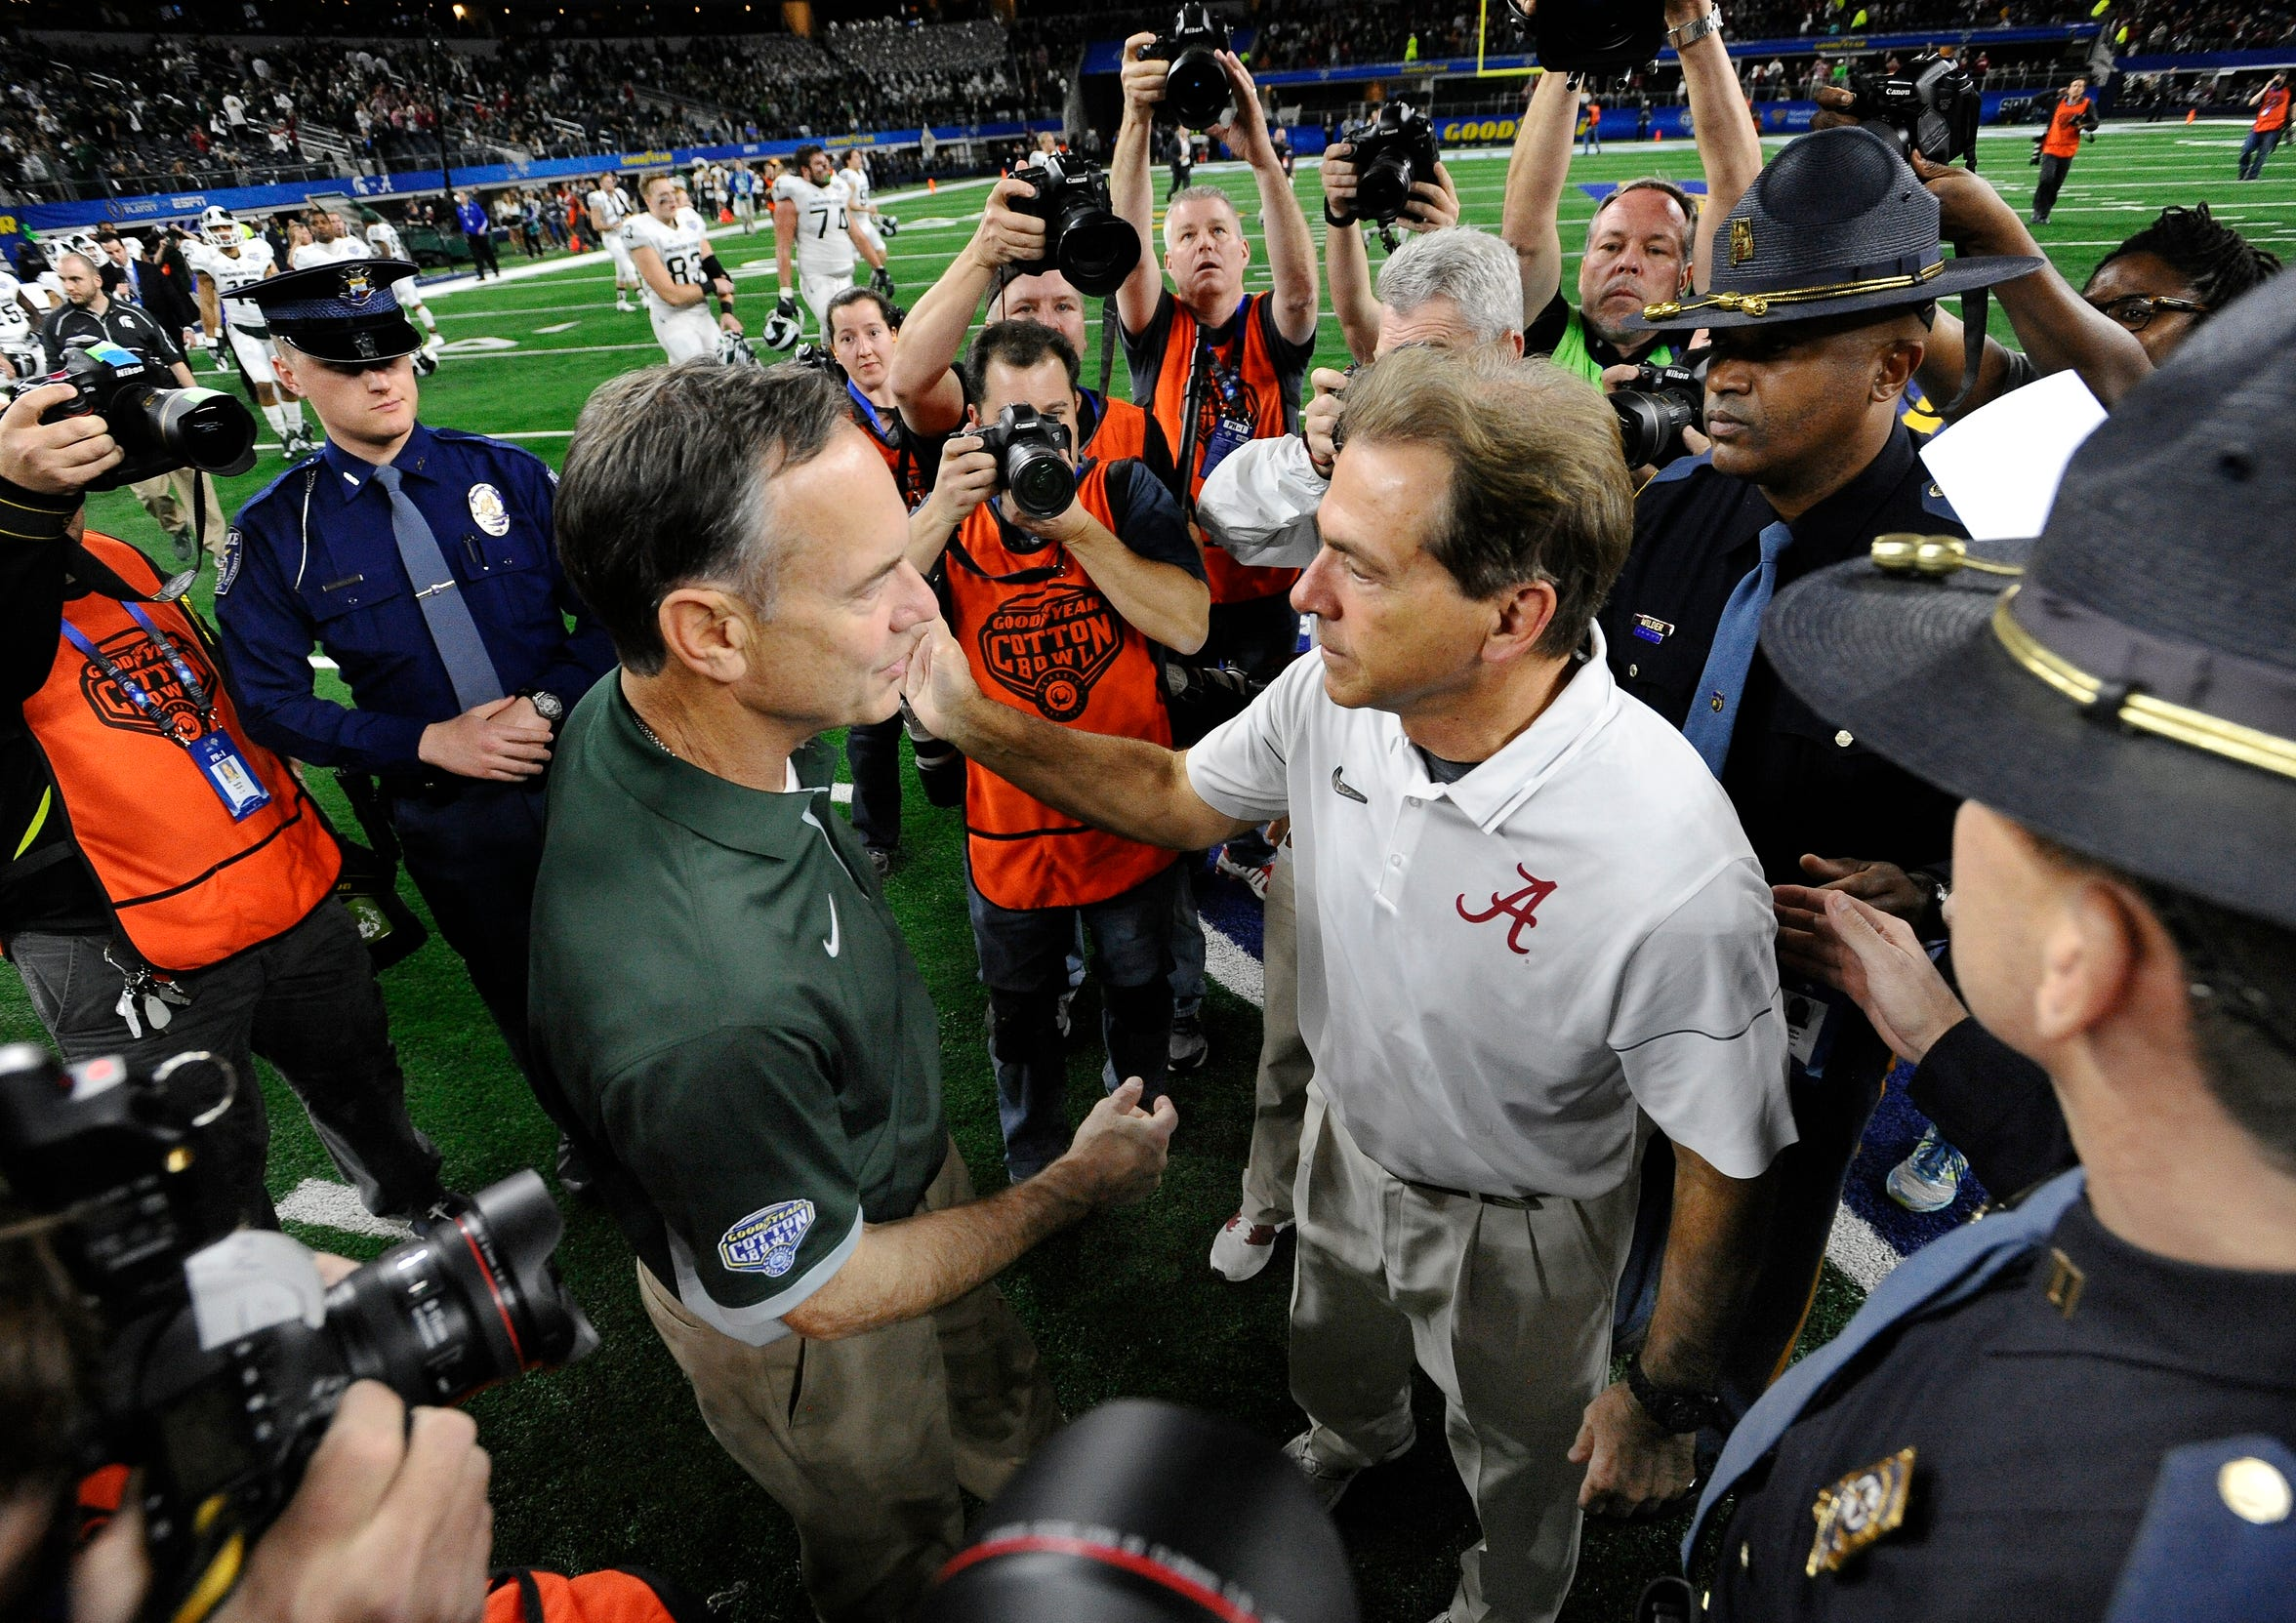 MSU coach Mark Dantonio and Alabama coach Nick Saban meet at the center of the field after the Tide beat the Spartans 38-0.